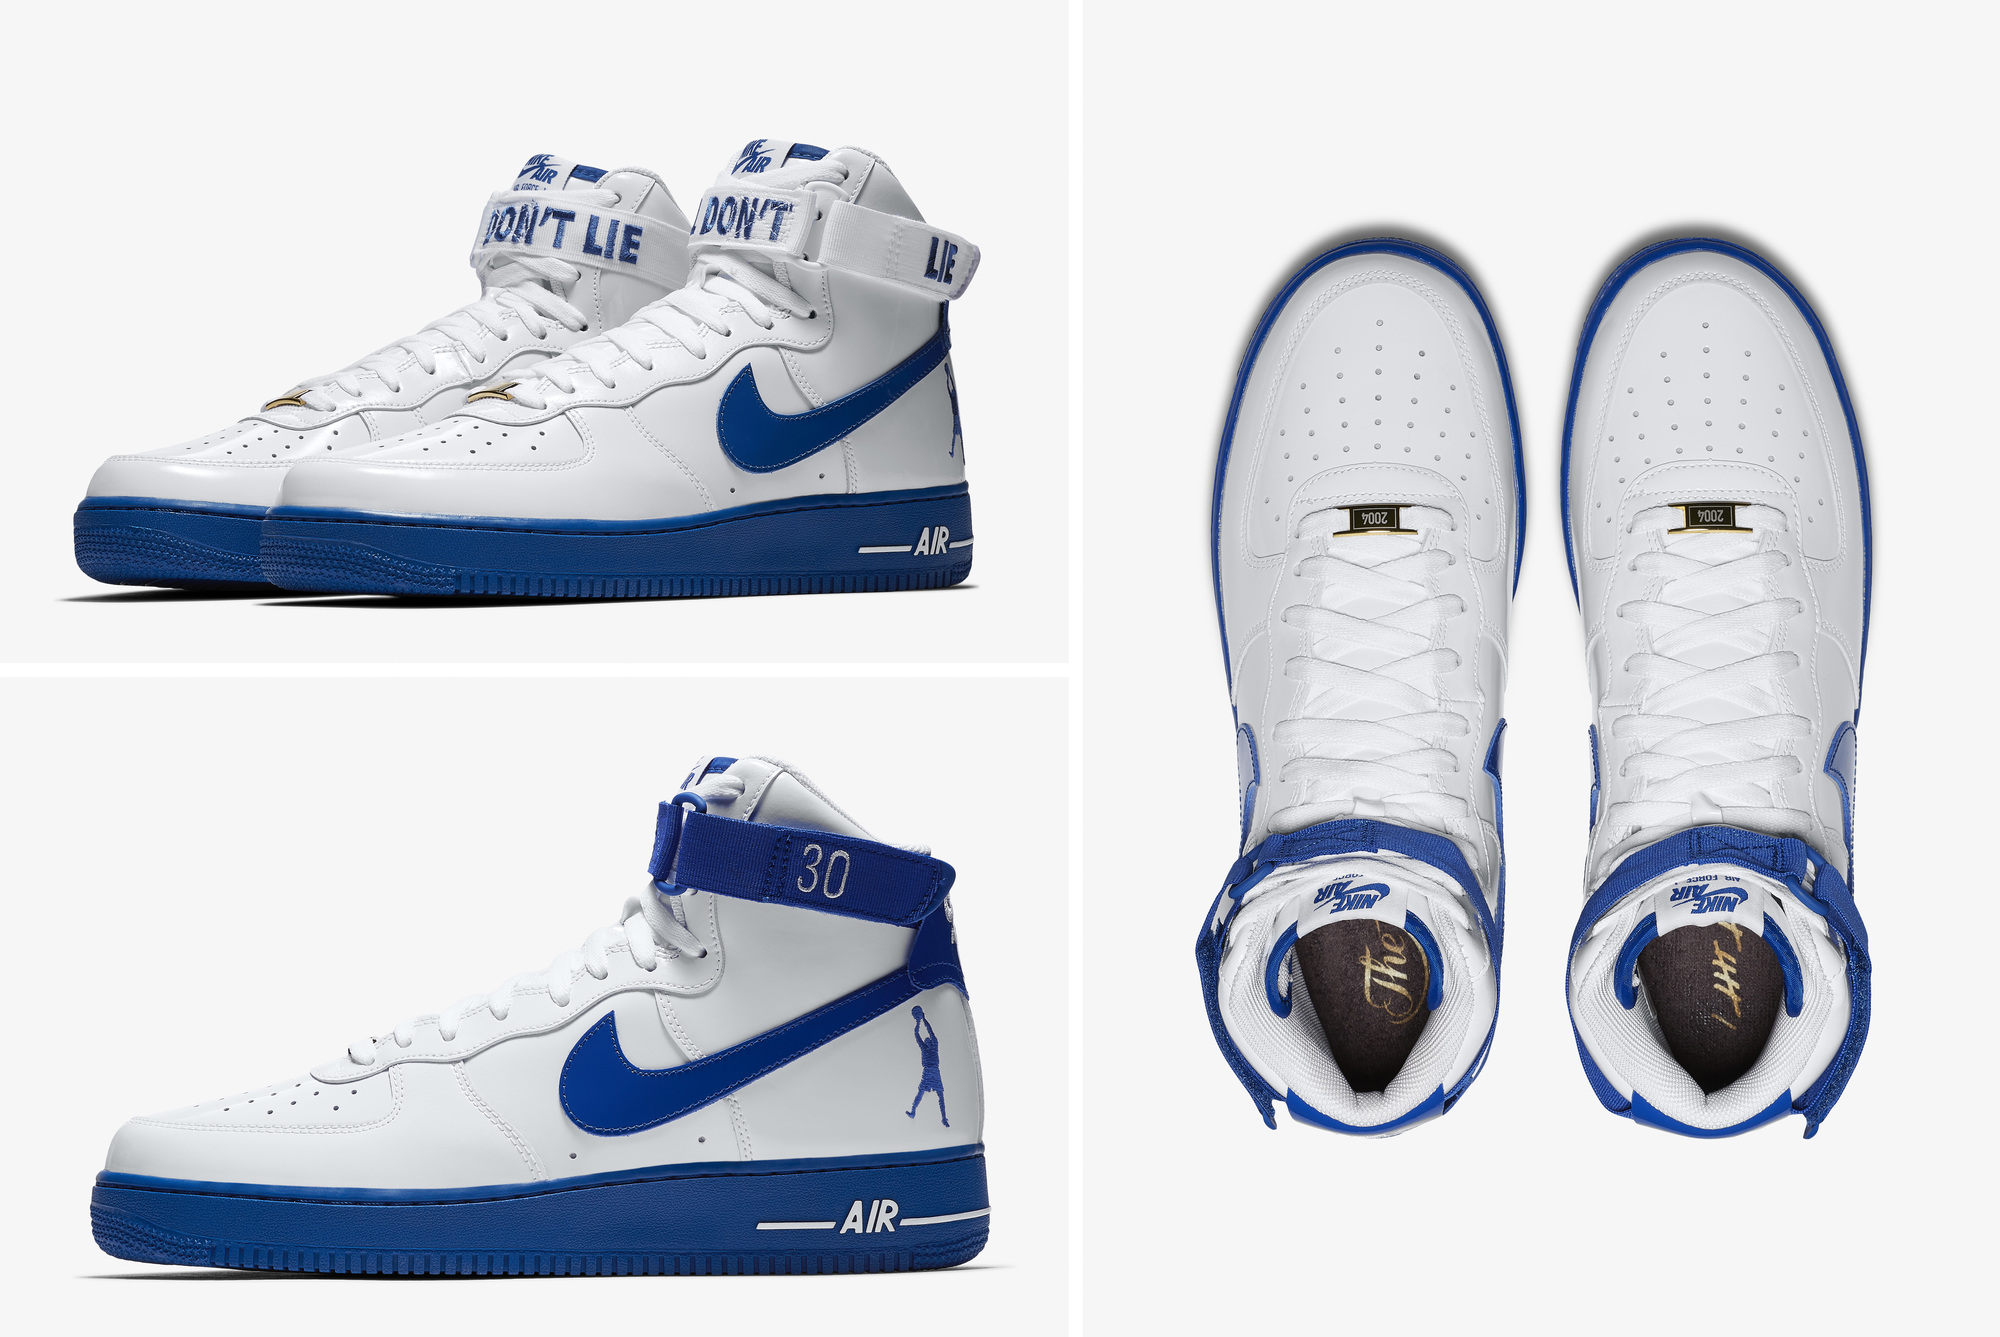 huge selection of 6567e 3b9fd nike air force 1 high retro rude awakening